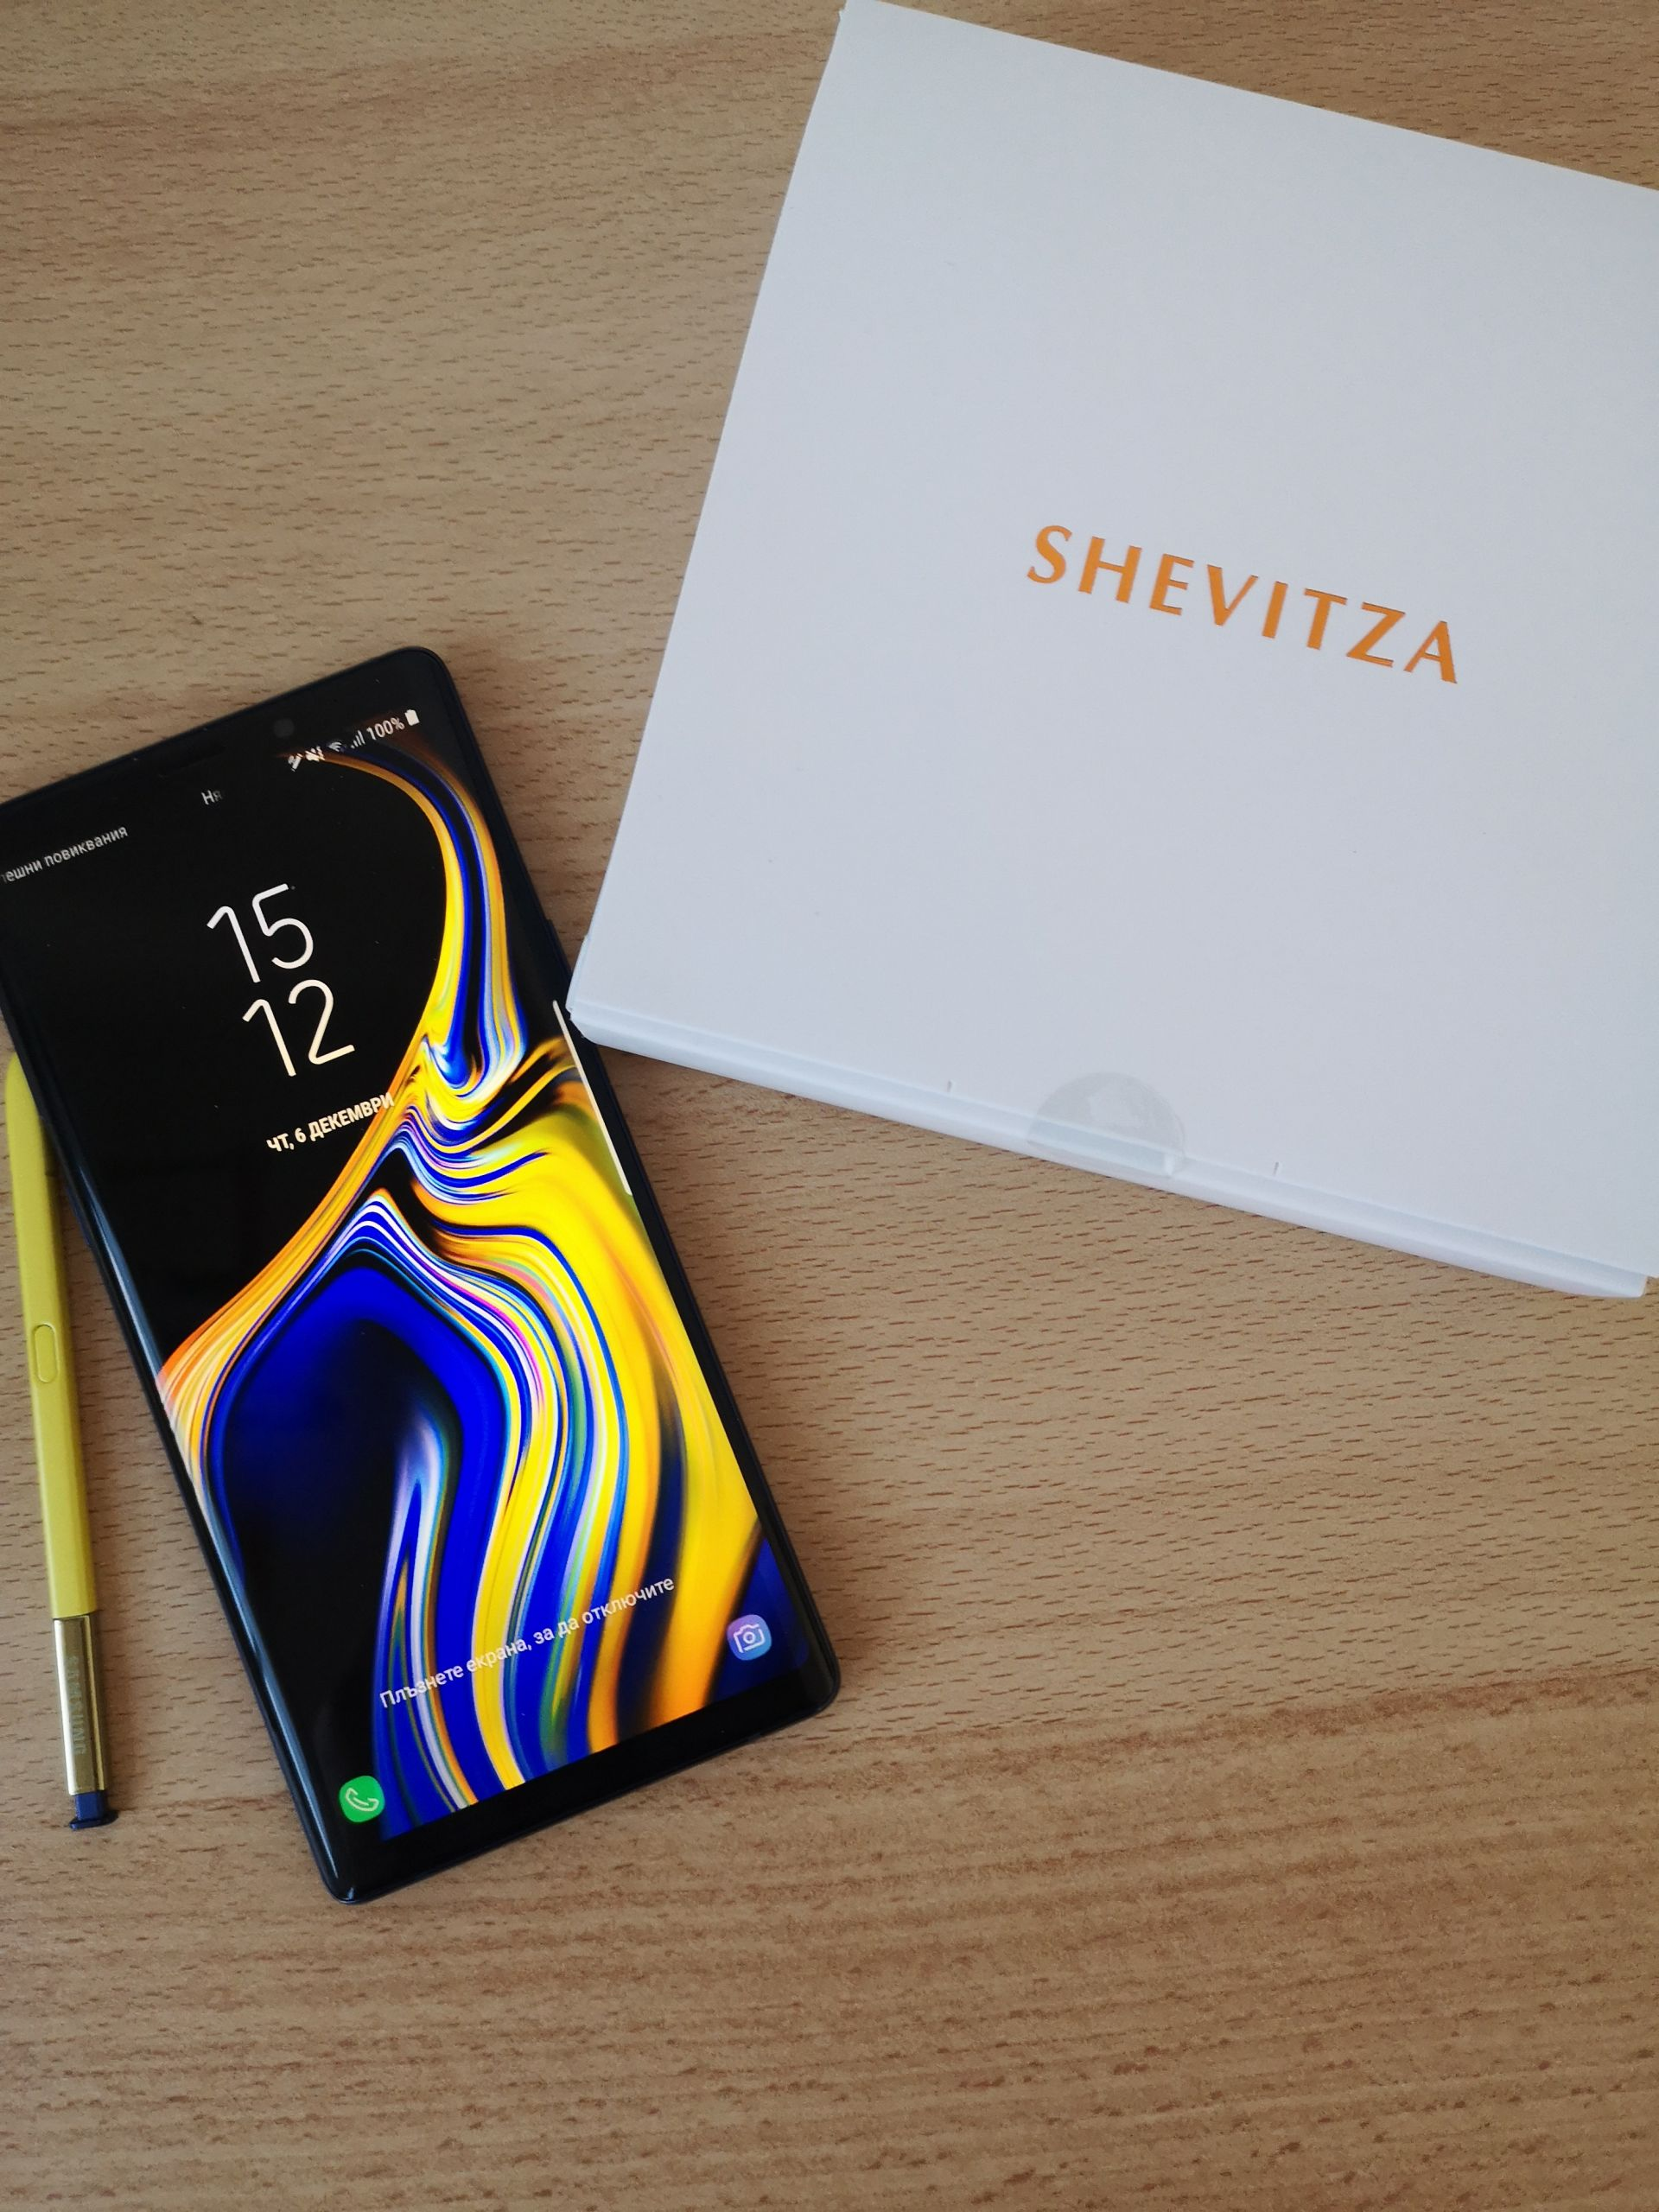 Шал Шевица и Samsung  Galaxy Note9 – чудесен подарък за Коледа, особено за послушните и работливите.